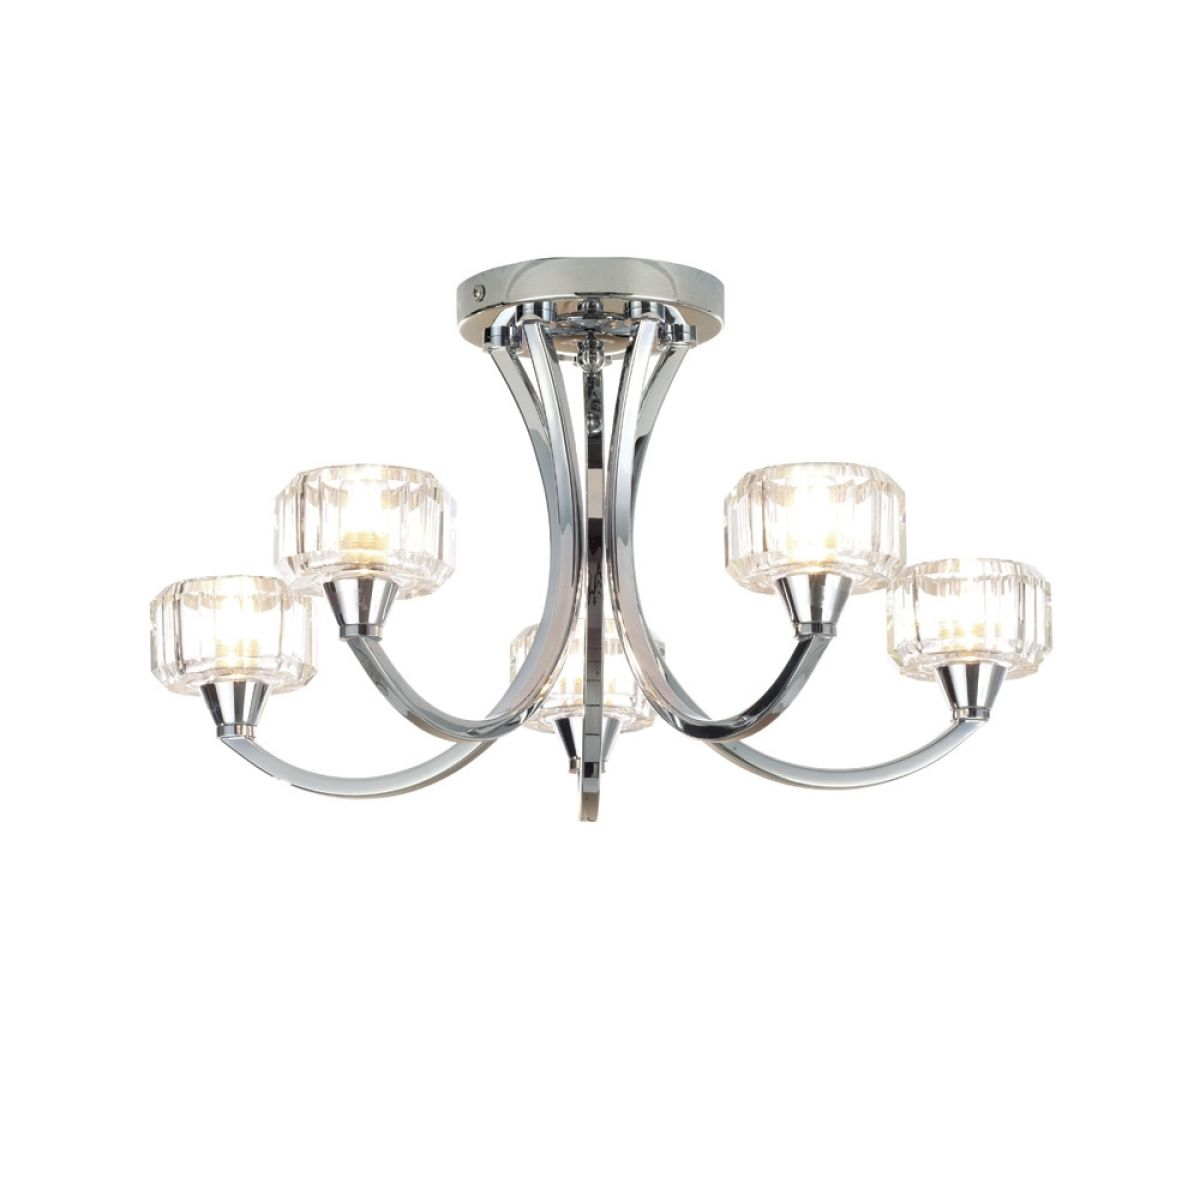 Forum Octans 5 Light Ceiling Lamp